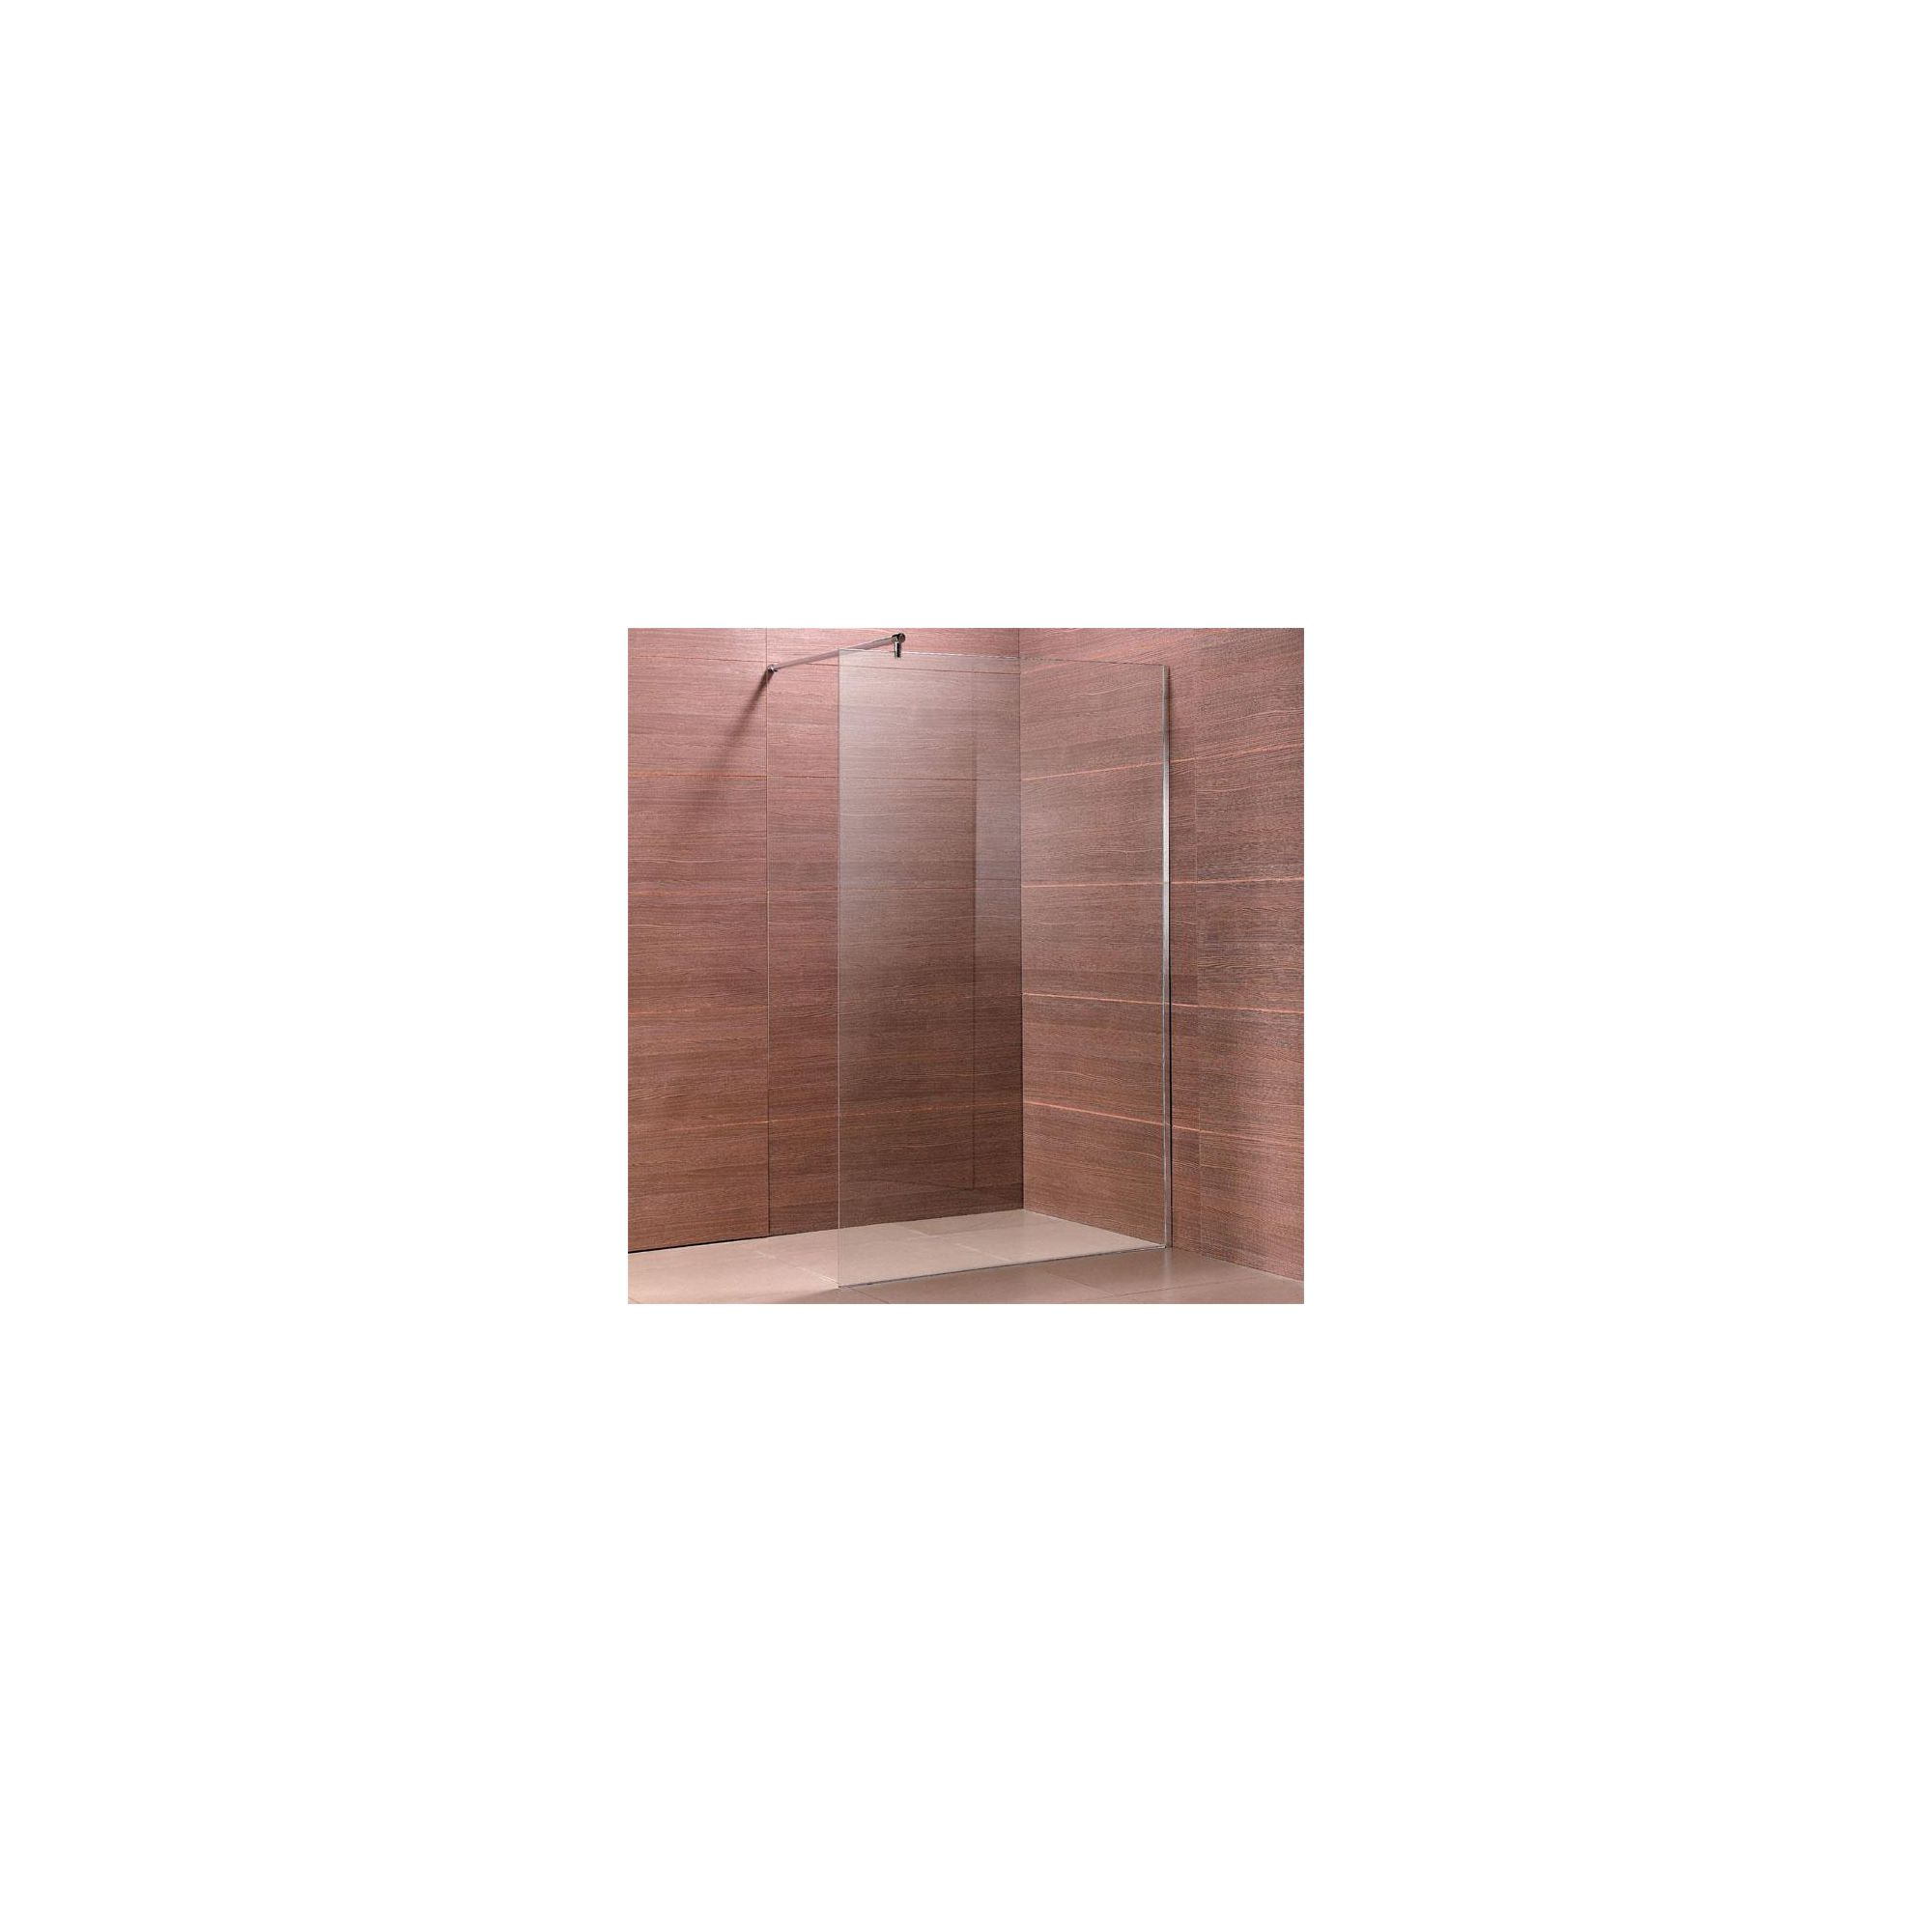 Duchy Premium Wet Room Glass Shower Panel, 1200mm x 900mm, 8mm Glass, Low Profile Tray at Tesco Direct